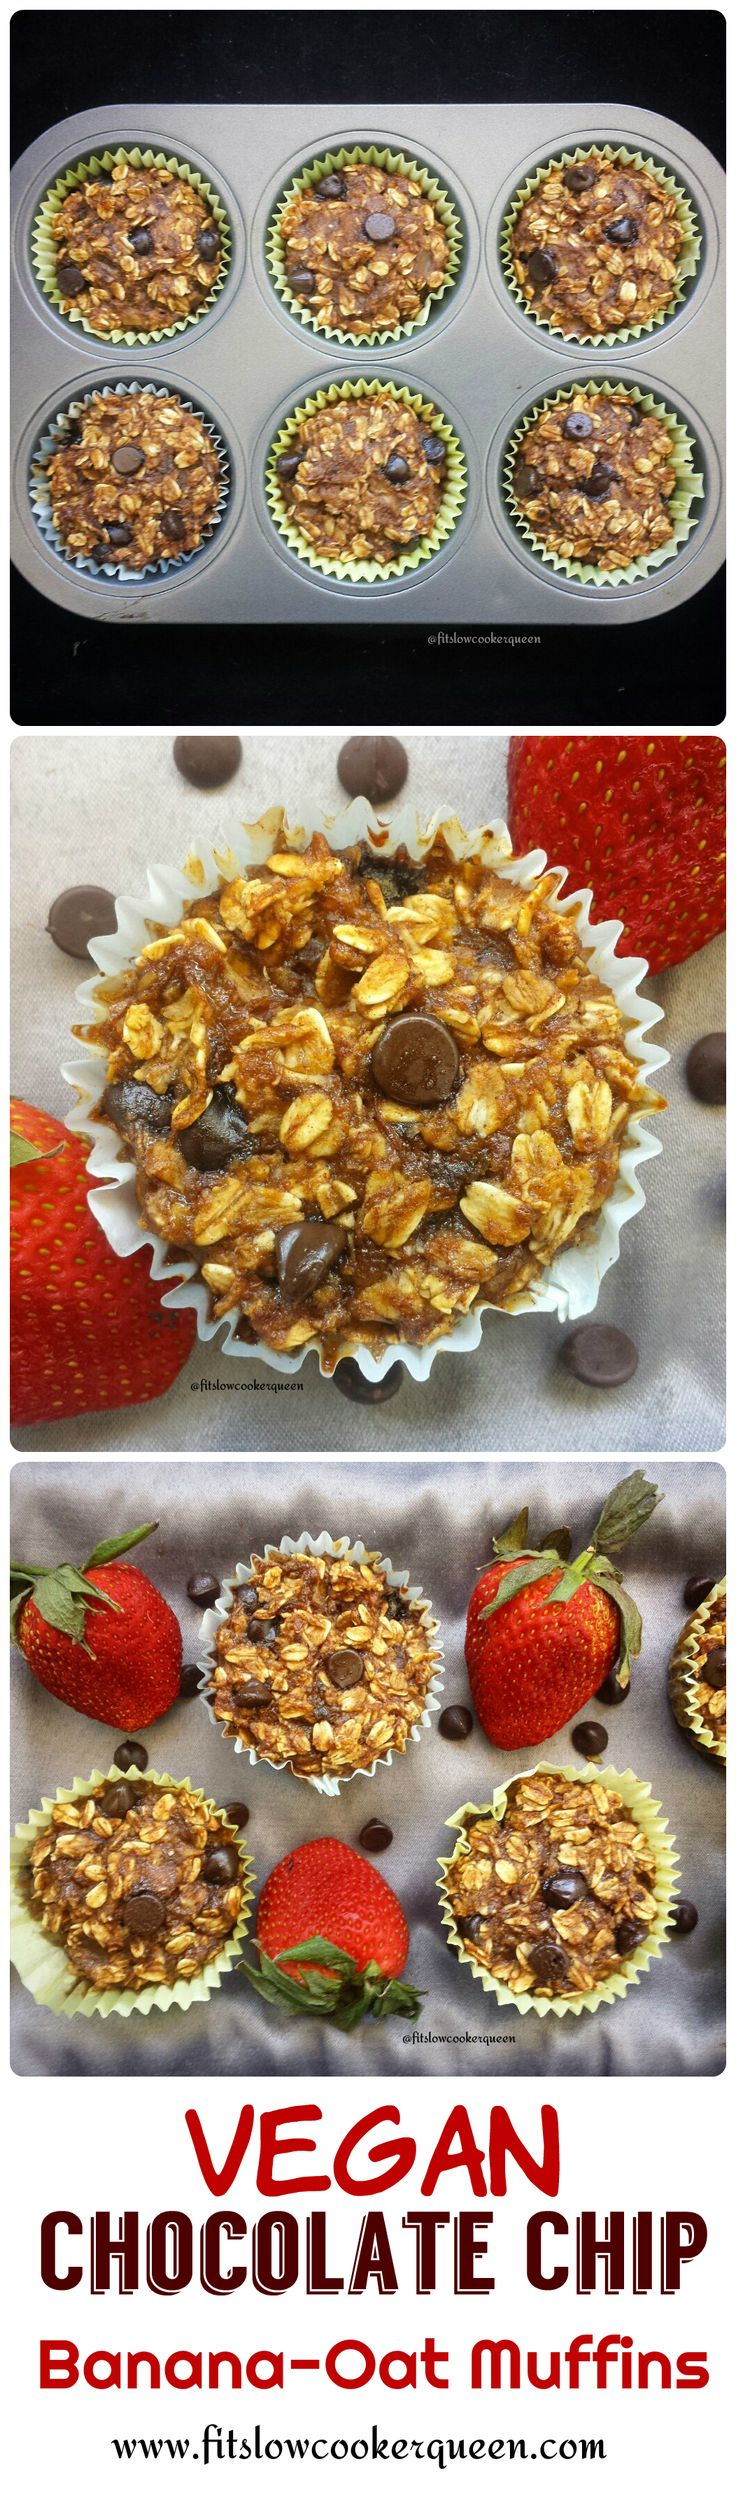 These kid-friendly vegan breakfast muffins can be dressed up with fruit, nuts or chocolate chips. By adding more maple syrup this can also be a dessert.